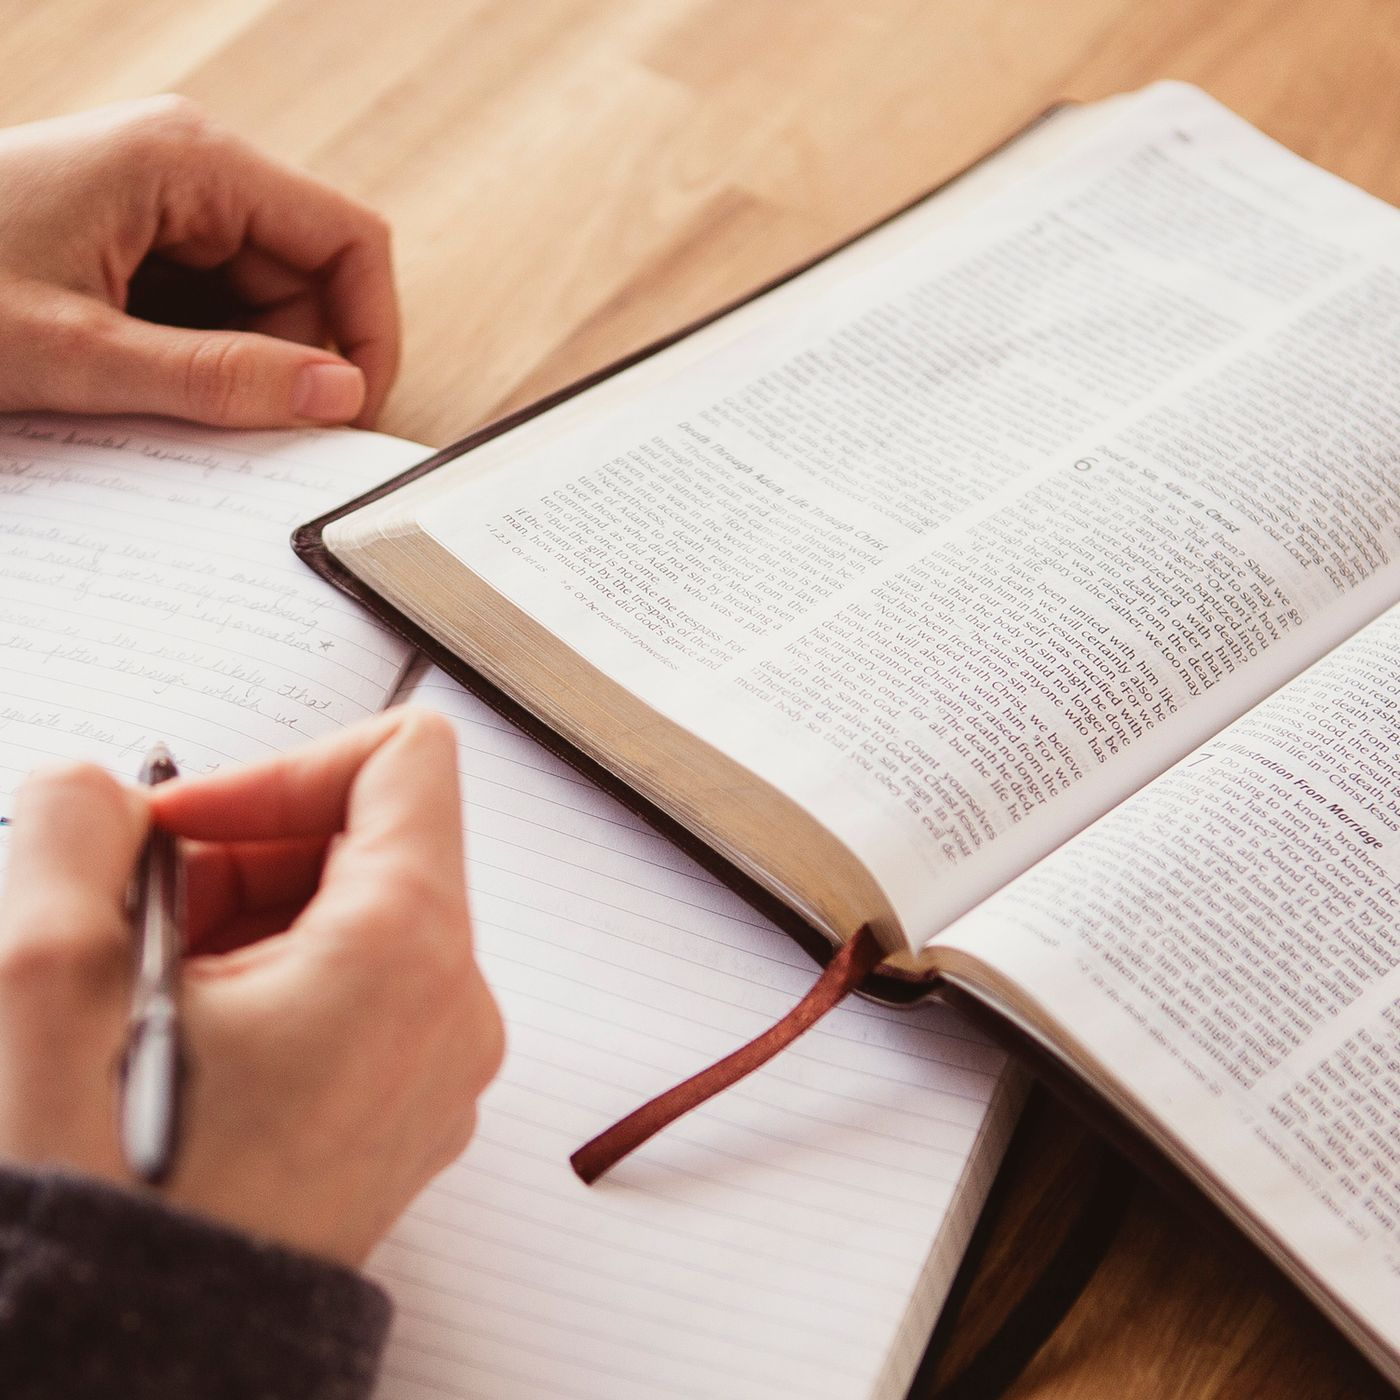 A Guided Bible Study: Acts 17:16-34 Pt 2